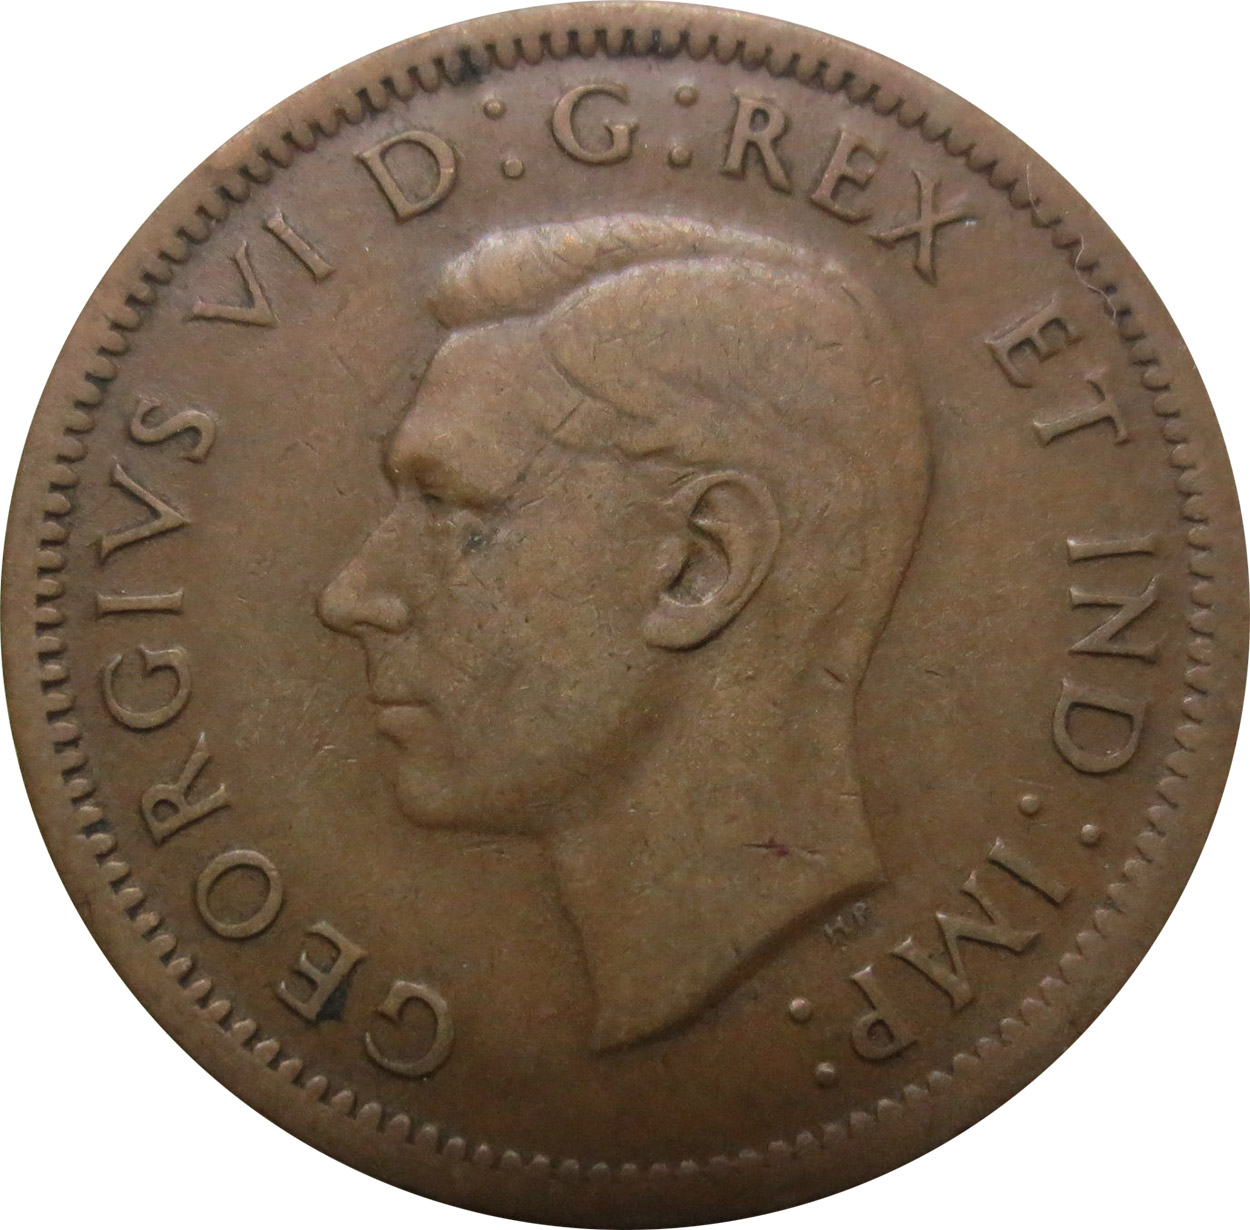 VG-8 - 1 cent 1937 to 1952 - George VI